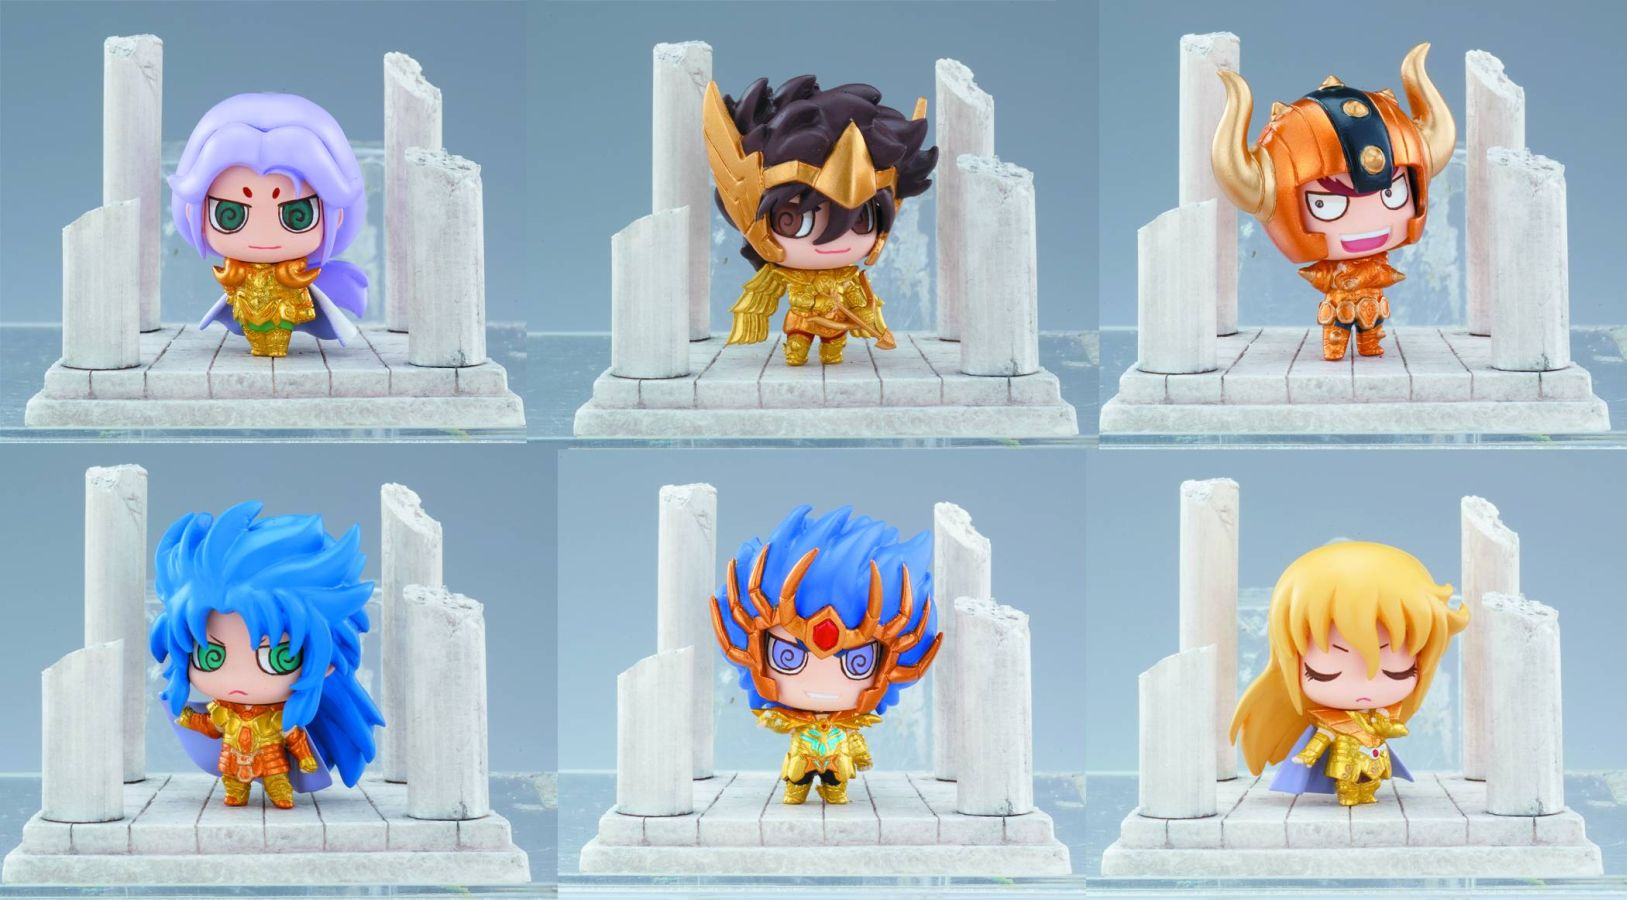 Saint Seiya Petit Chara Land Figure Series 1